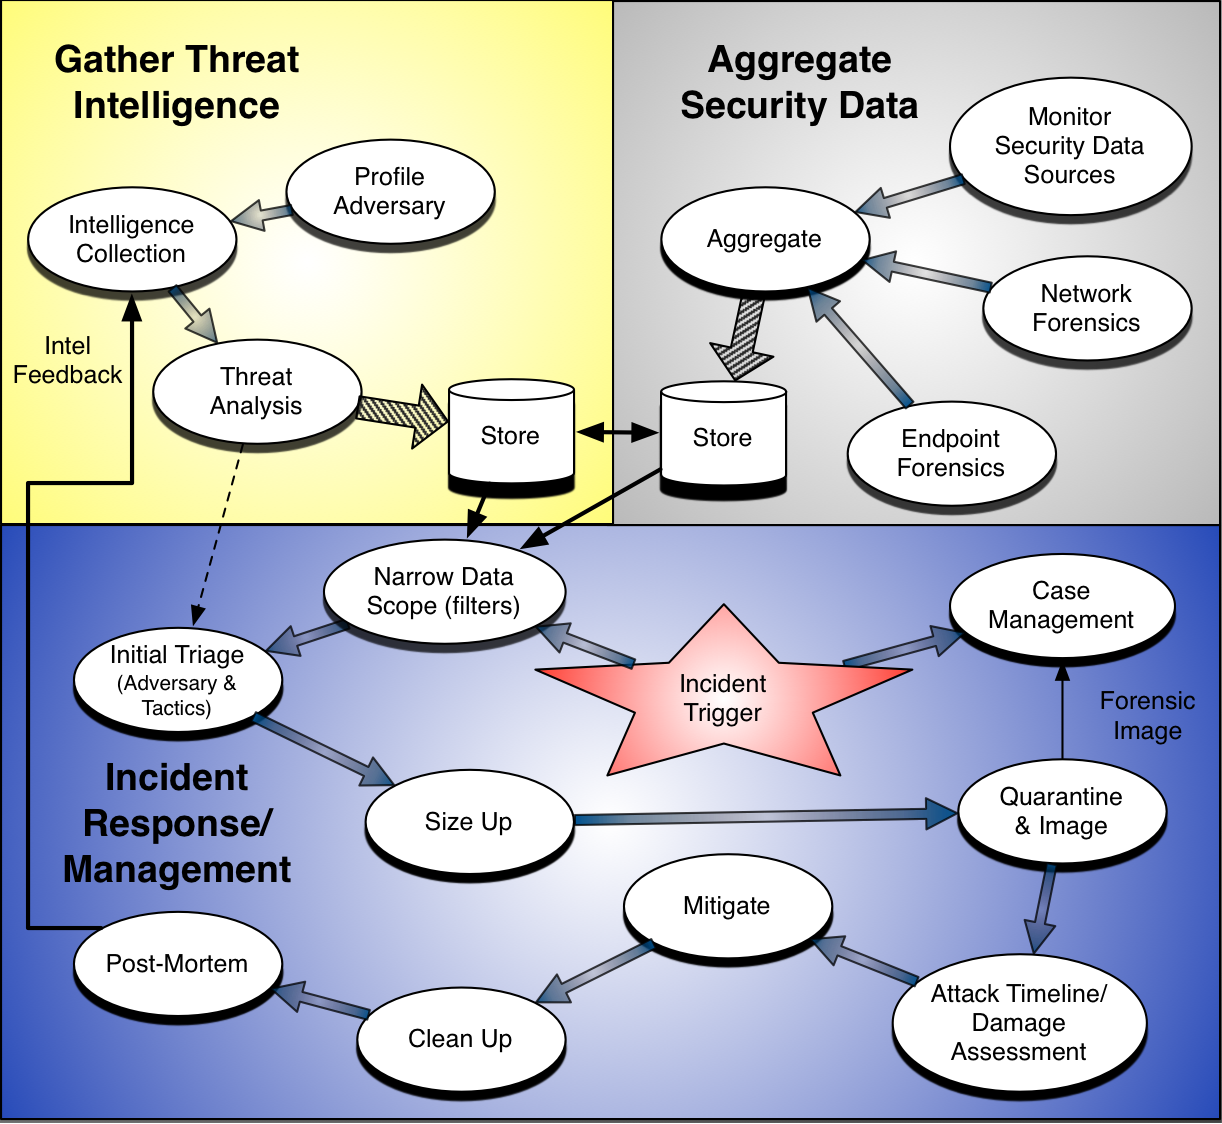 security threats and incidence response management in the hotel industry. A cyber security incident response plan will help you and your business prepare for and respond to an incident fast and effectively remember, the online security measures you take will help protect your business and your customers from existing threats, and also future threats.